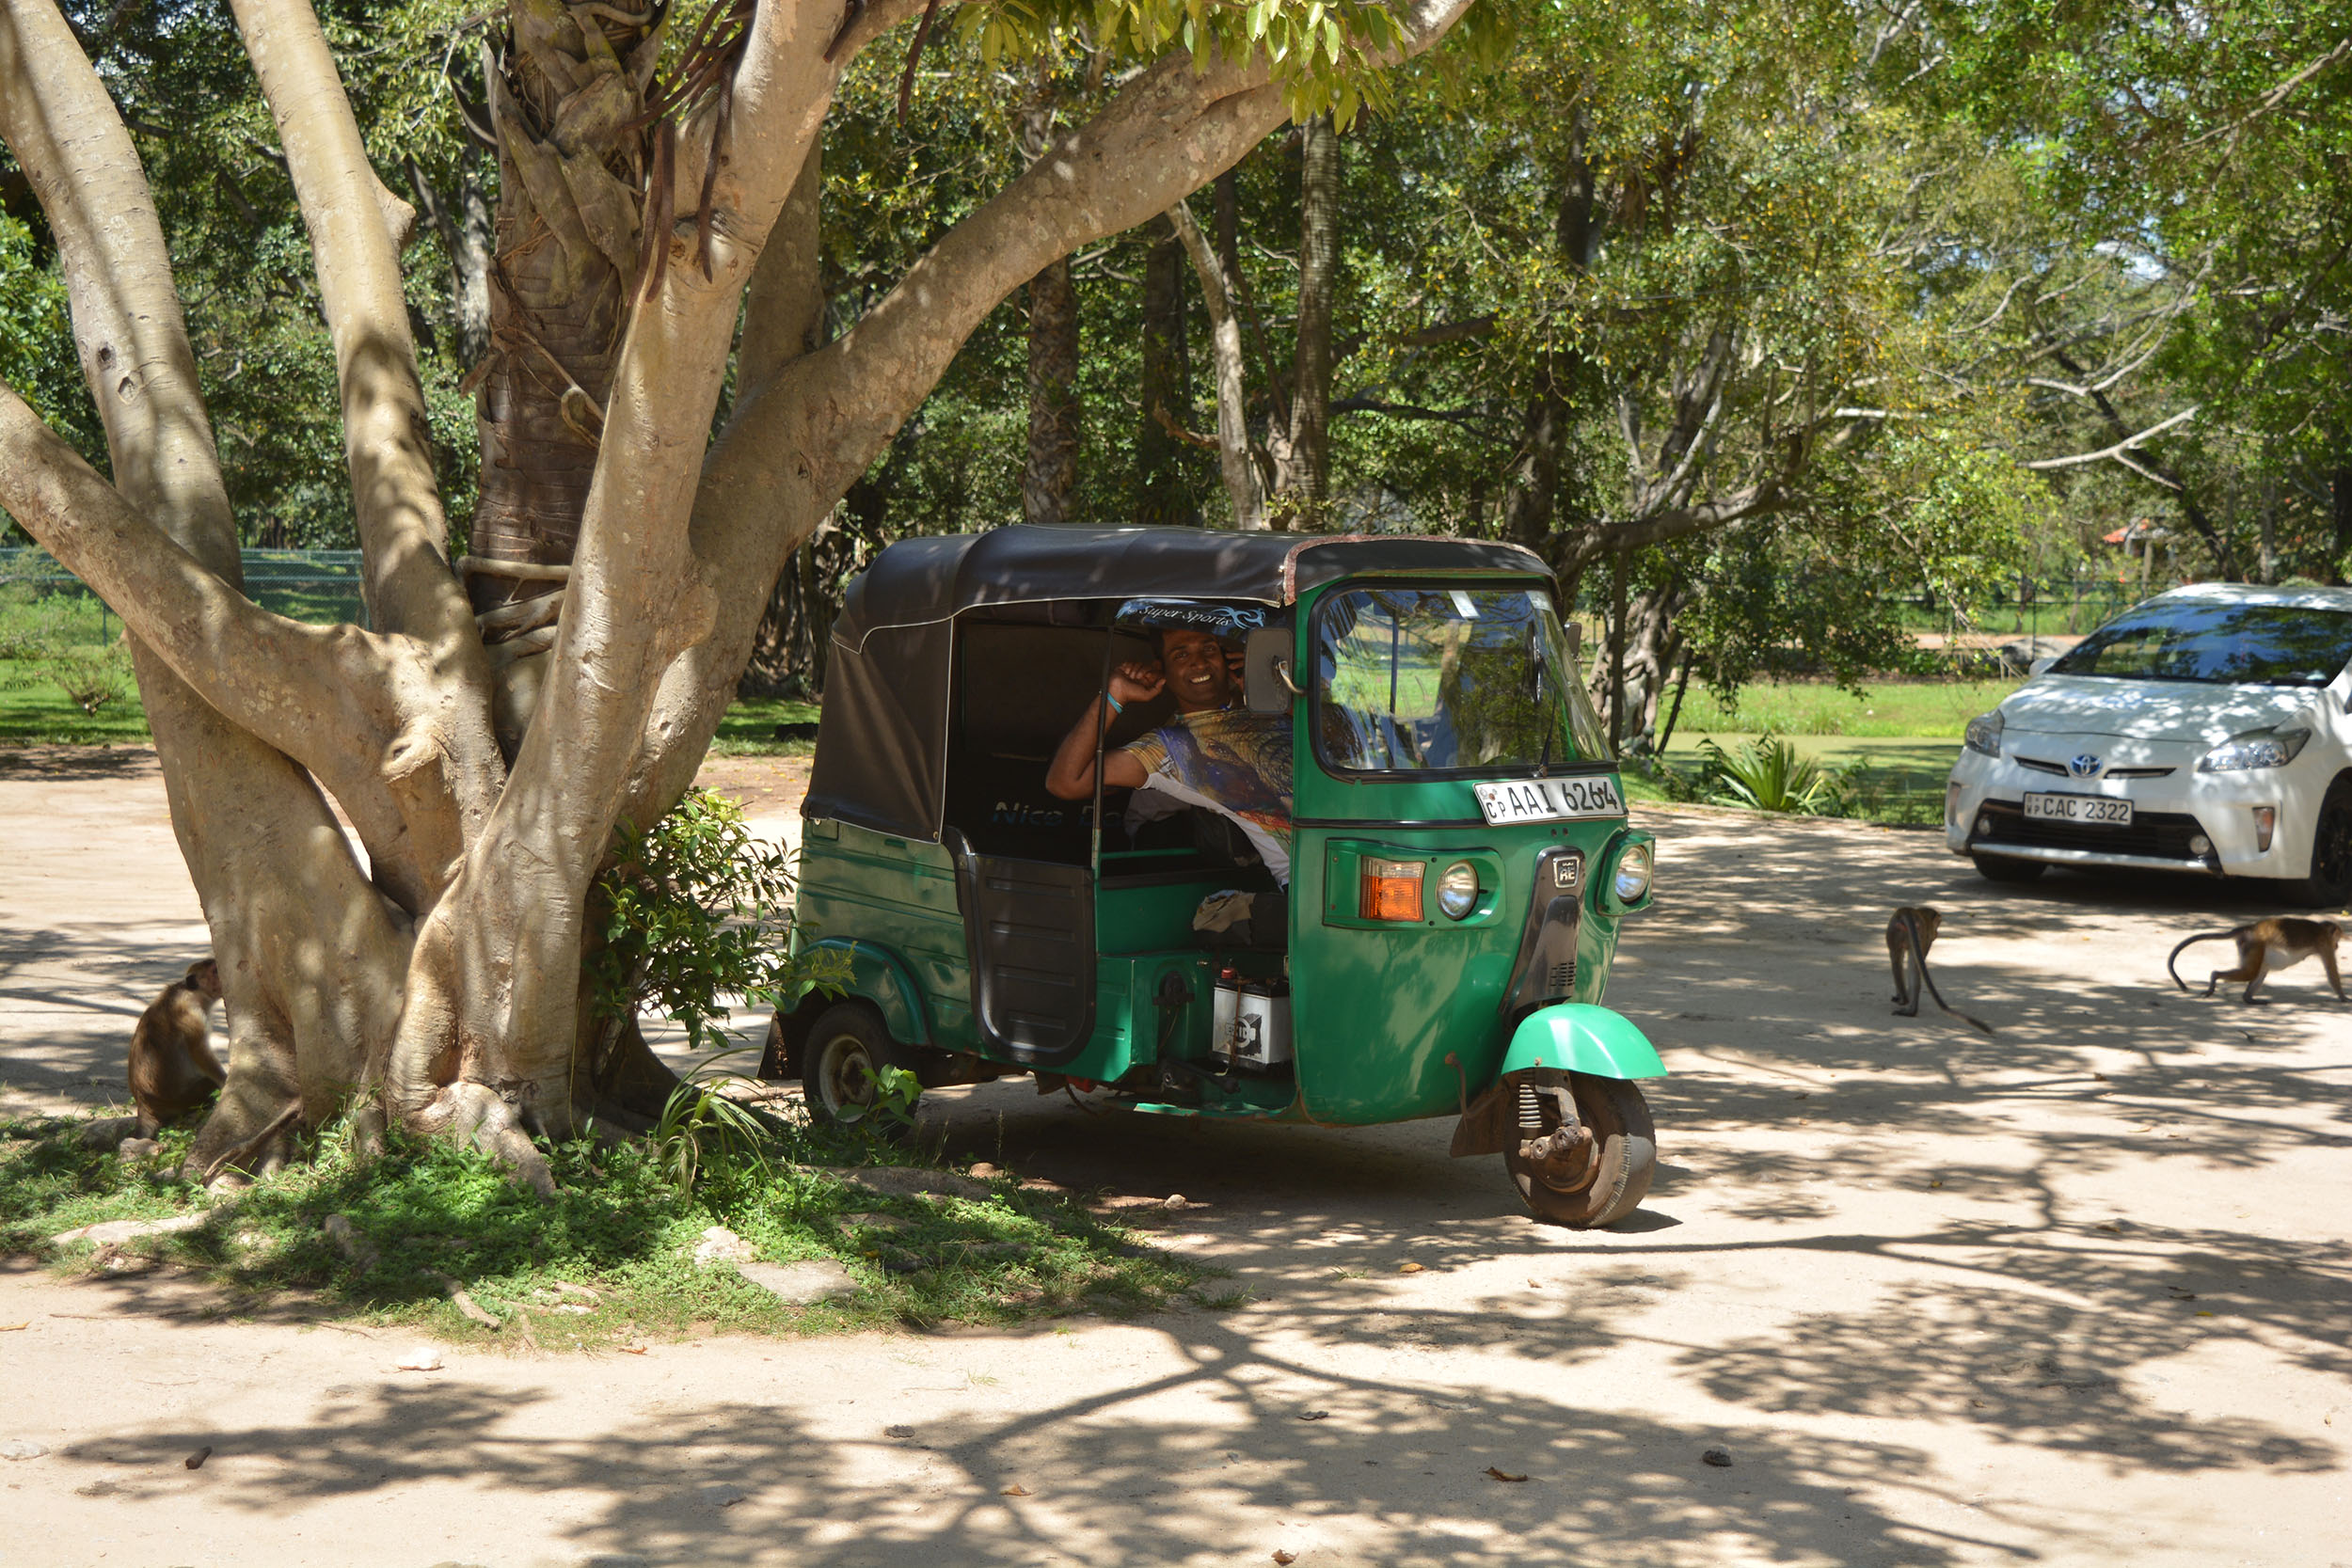 Tuc Tuc's are a popular and cheap mode of transport